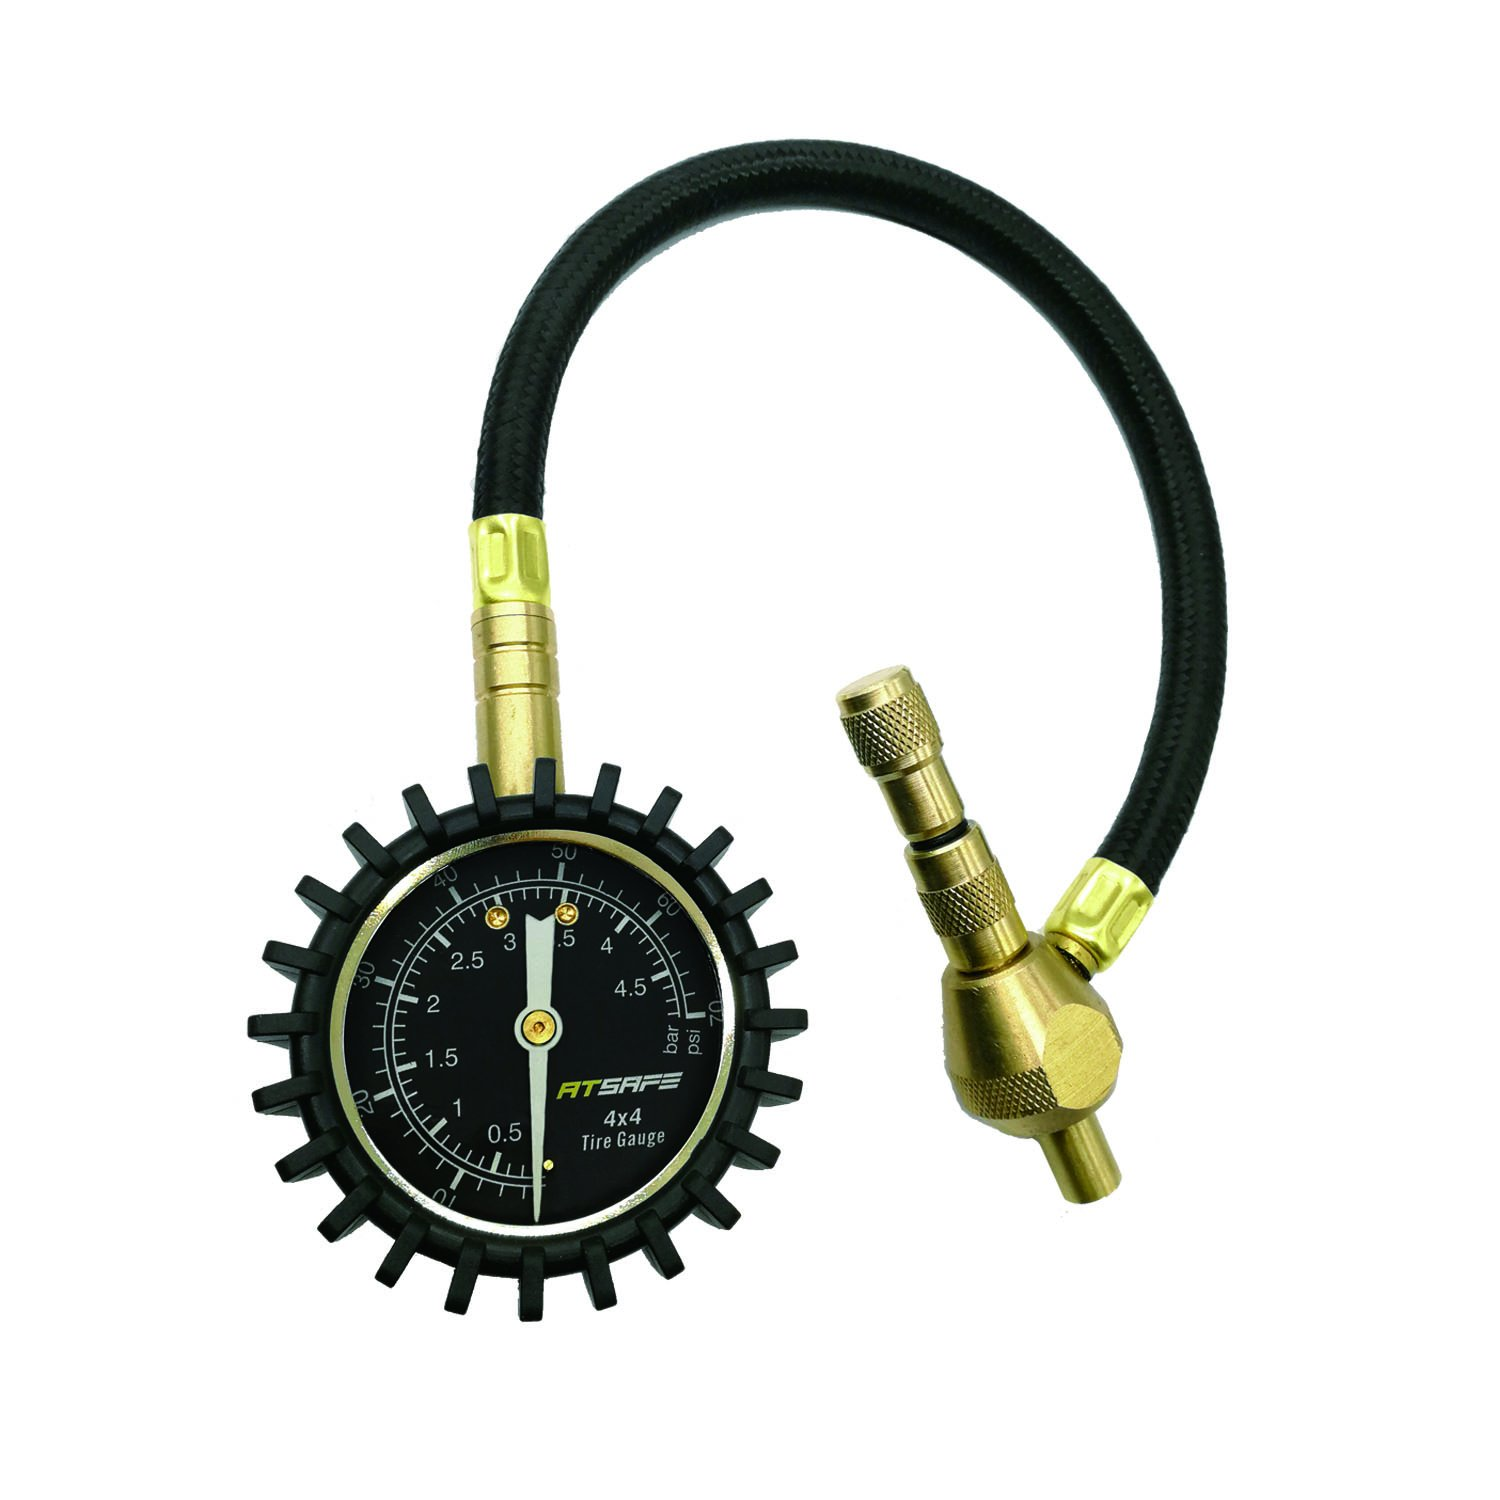 2 in 1 Professional Tire Deflator Pressure Gauge 75Psi with Special Chuck for 4X4 Large Offroad Tires Godeson 4333085858